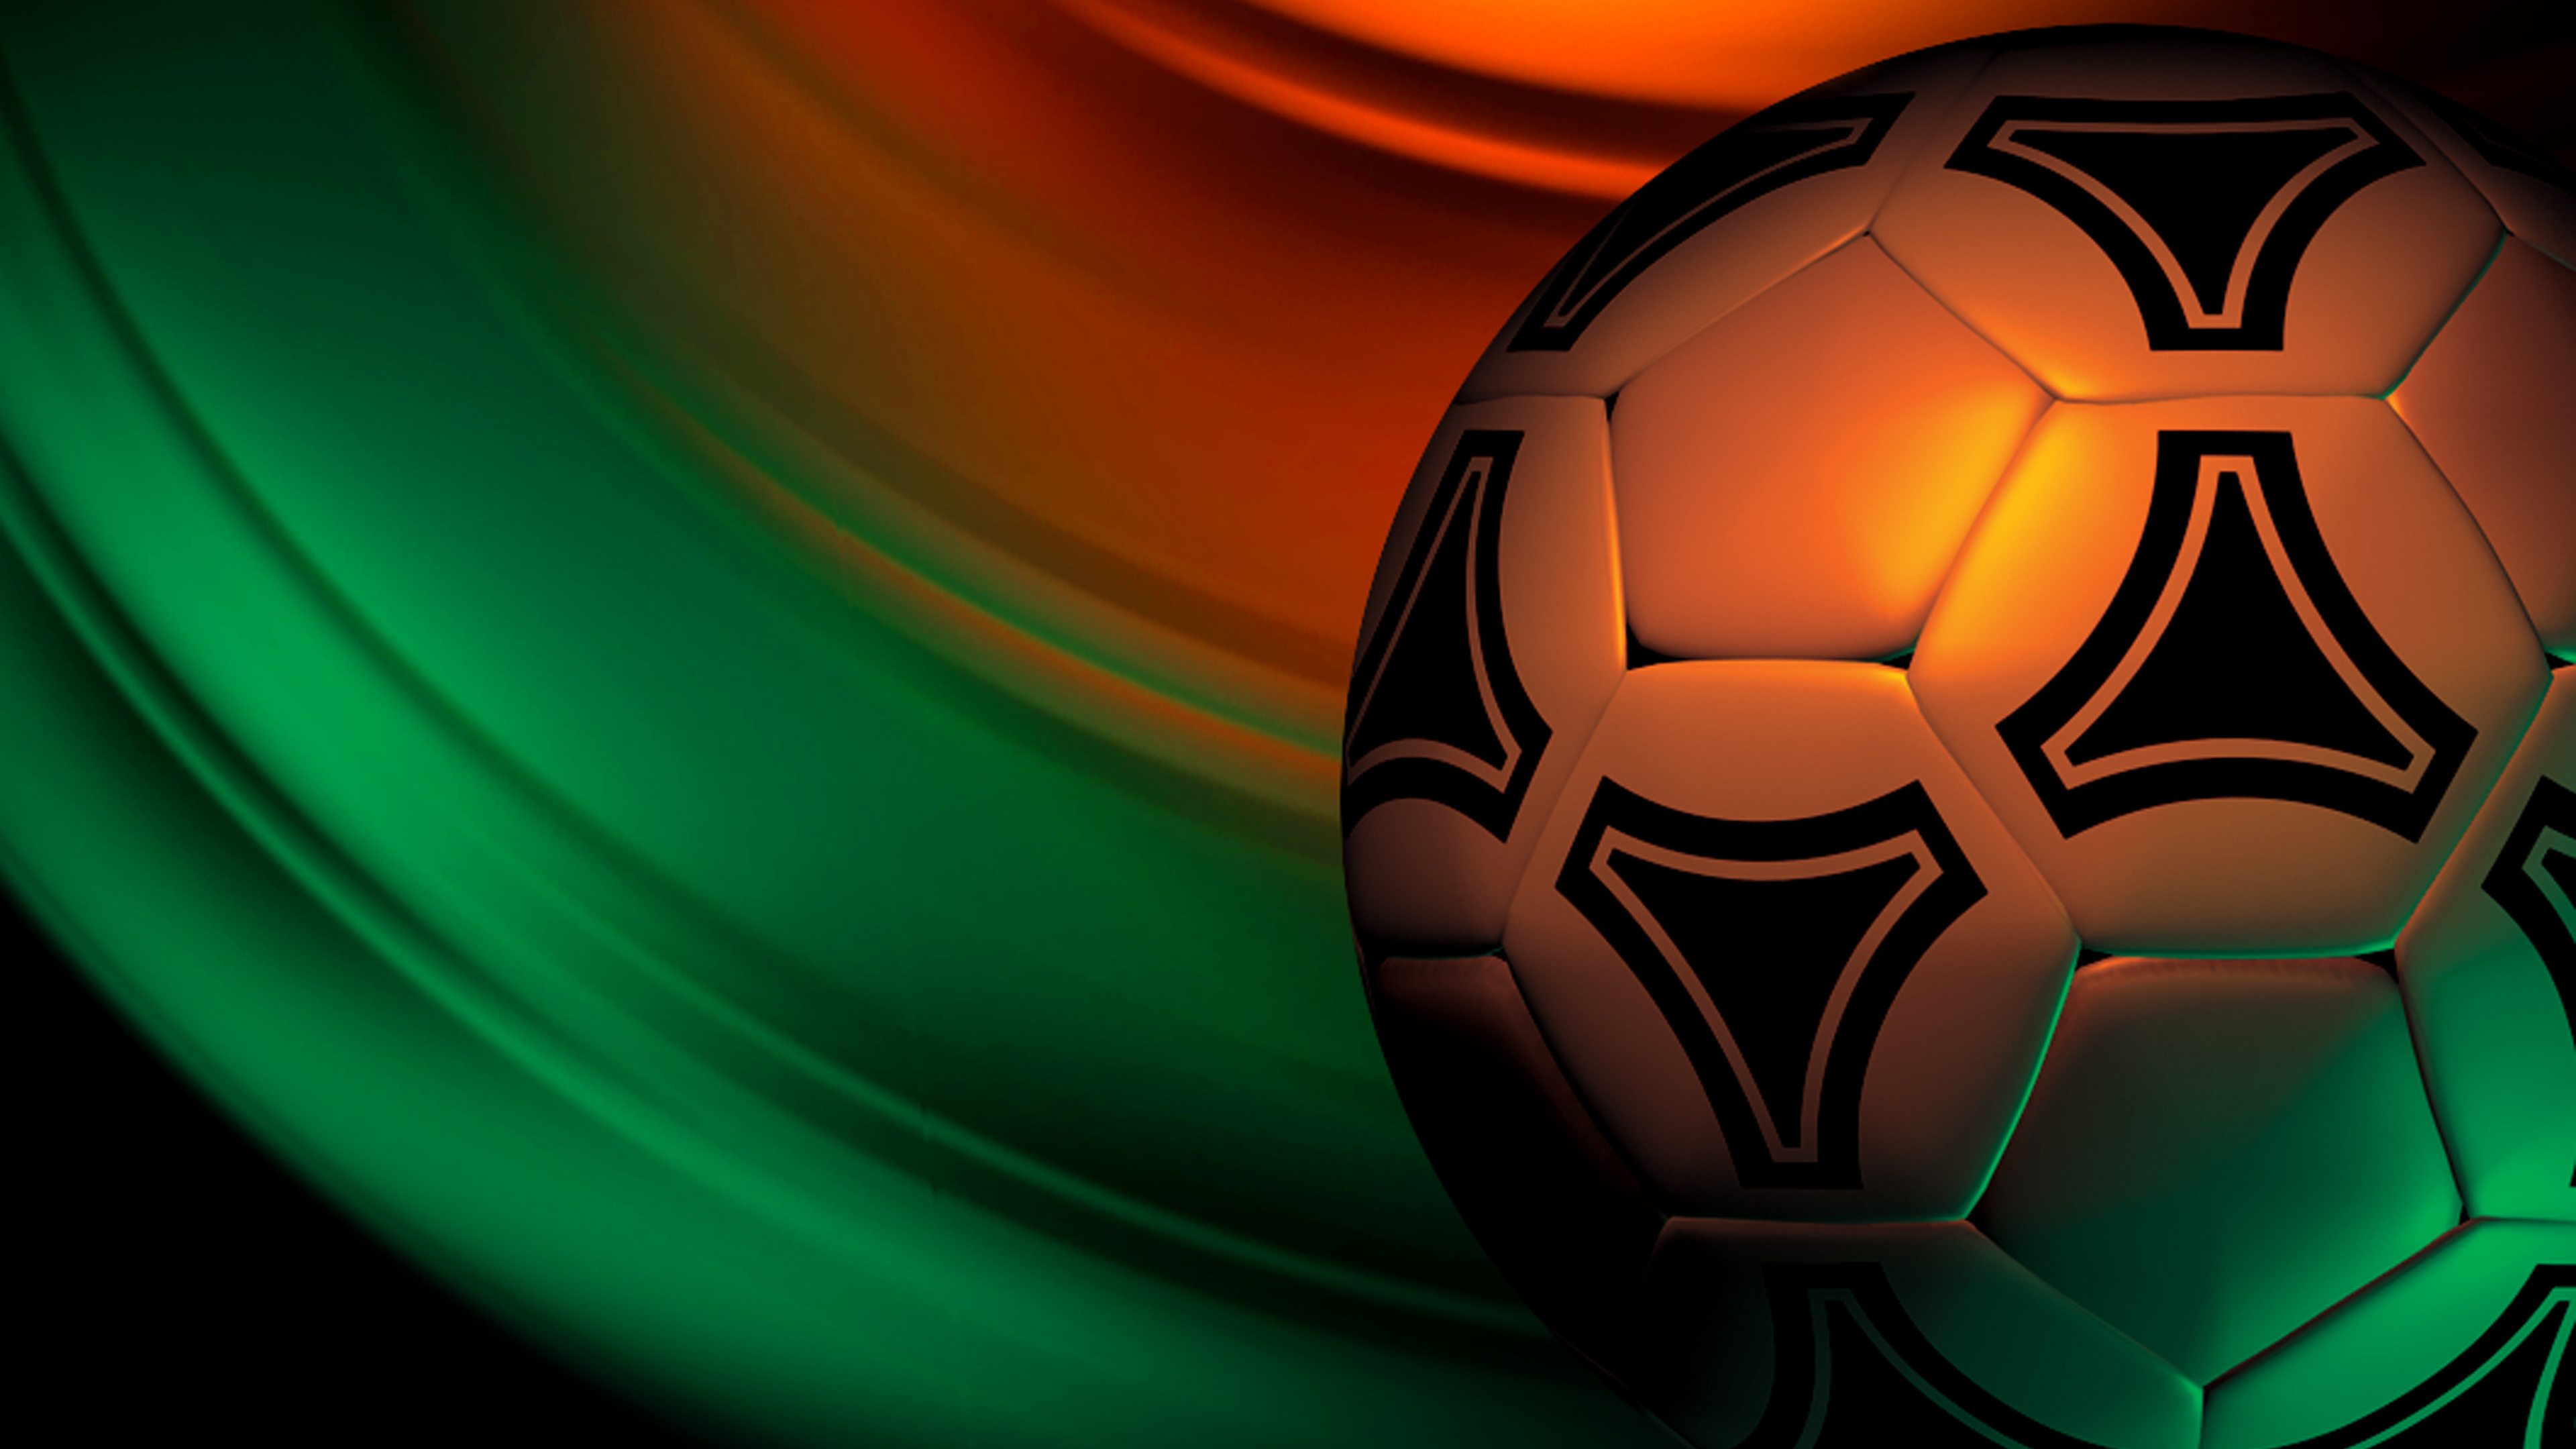 soccer 4k abstract background 1538786900 - Soccer 4k Abstract Background - sports wallpapers, soccer wallpapers, hd-wallpapers, abstract wallpapers, 4k-wallpapers